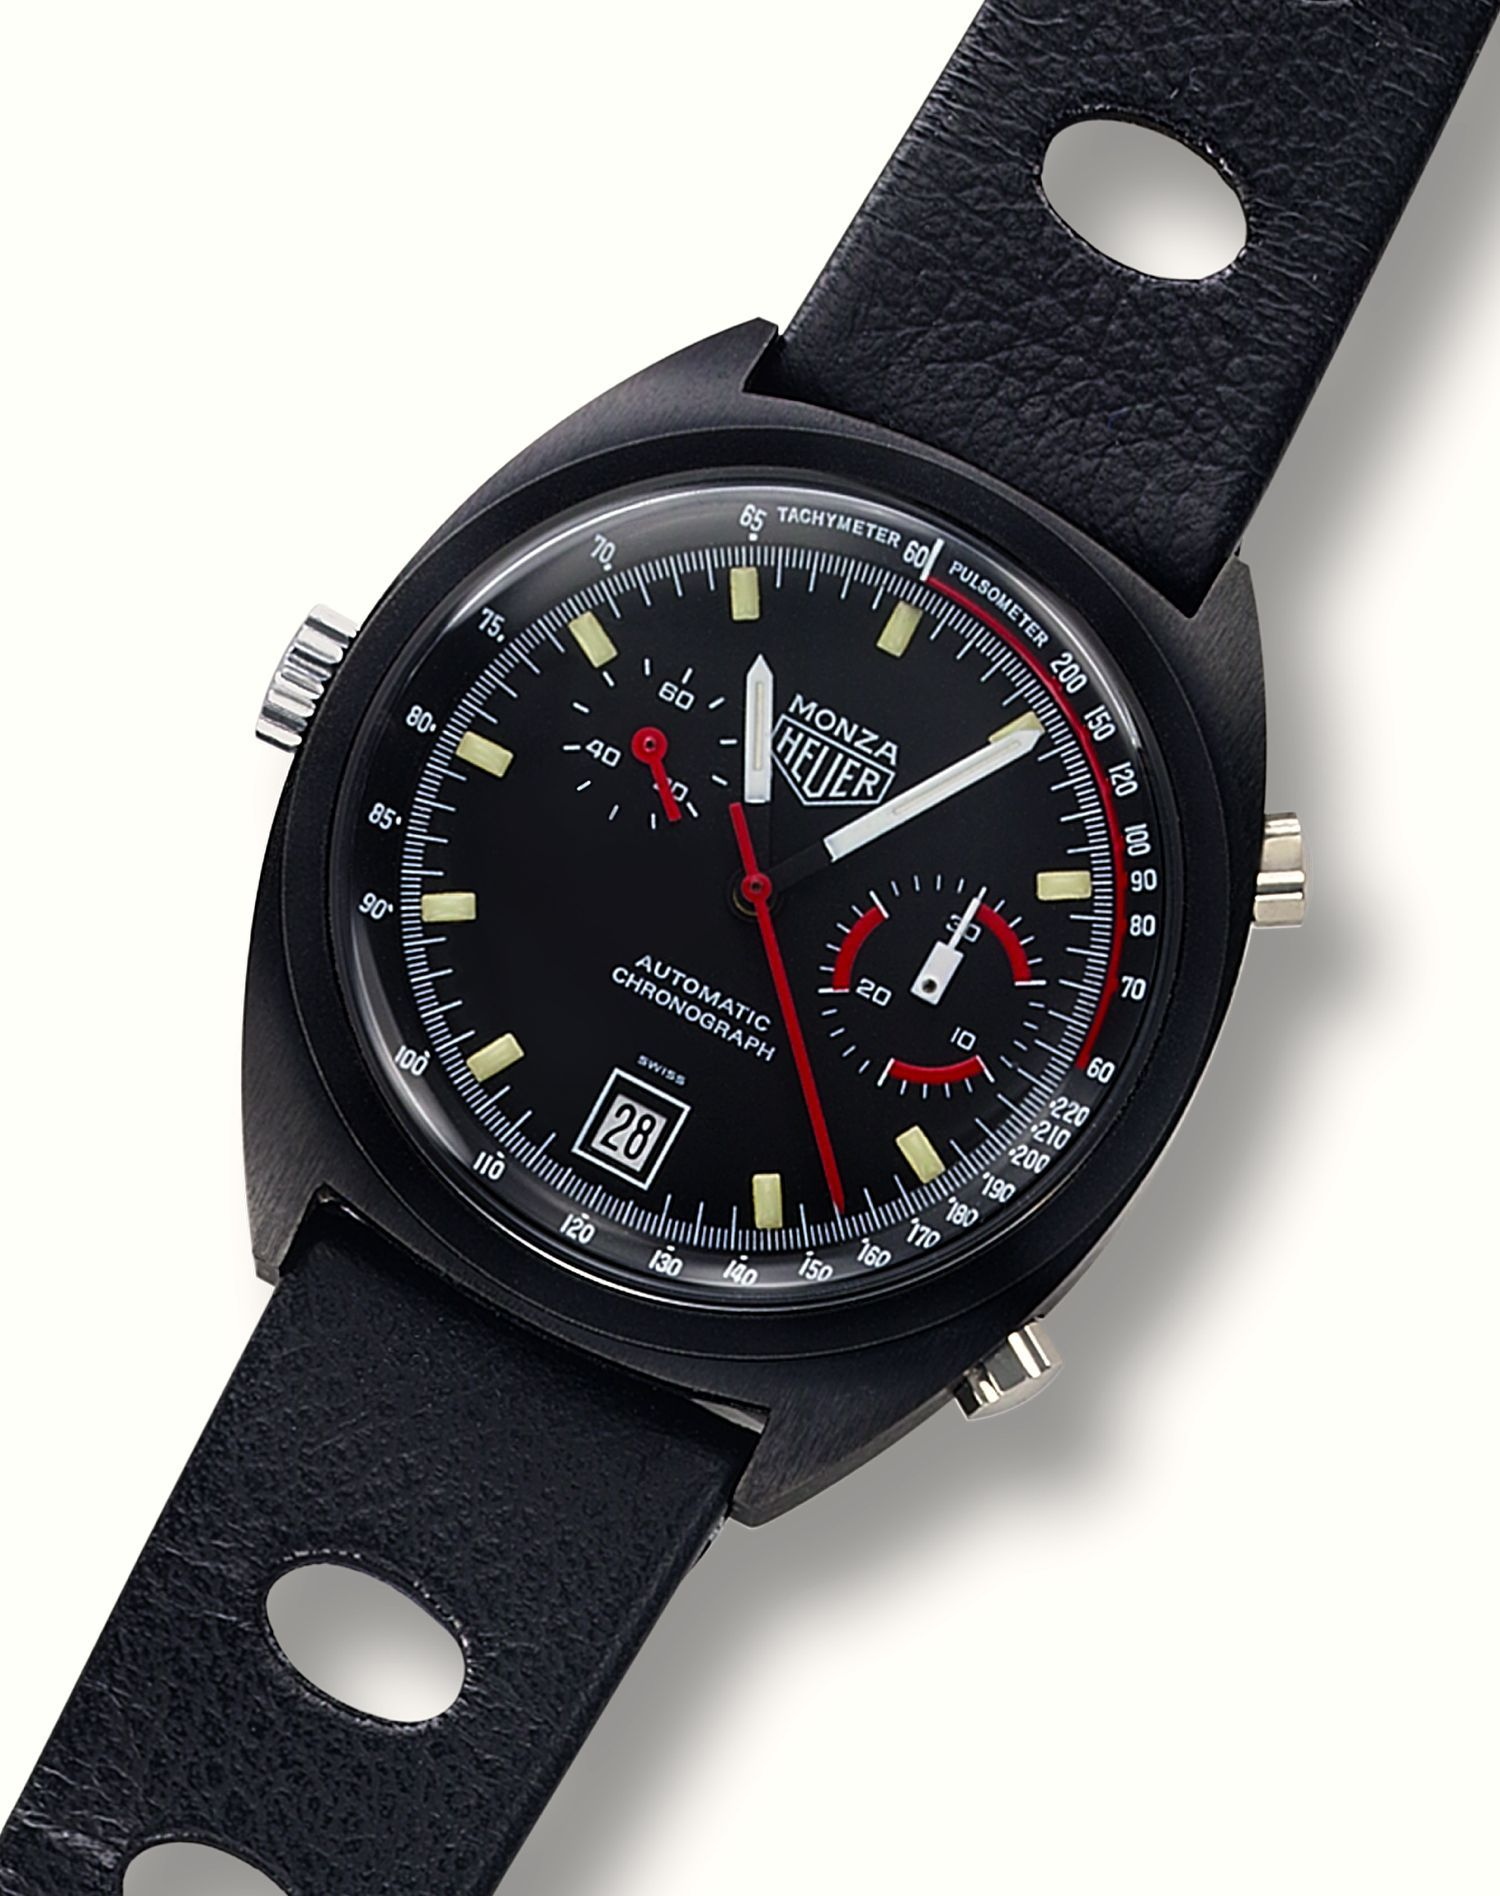 Ultimate Guide to the Heuer Monza | The Home of Vintage Heuer Collectors